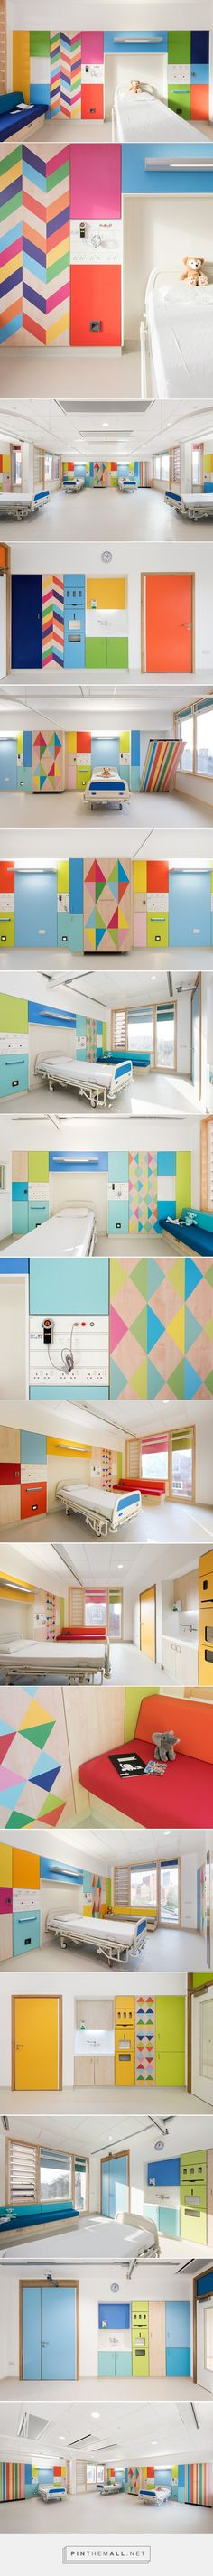 morag myerscough's bold + bright bespoke bedrooms light up sheffield children's hospital - created via https://pinthemall.net